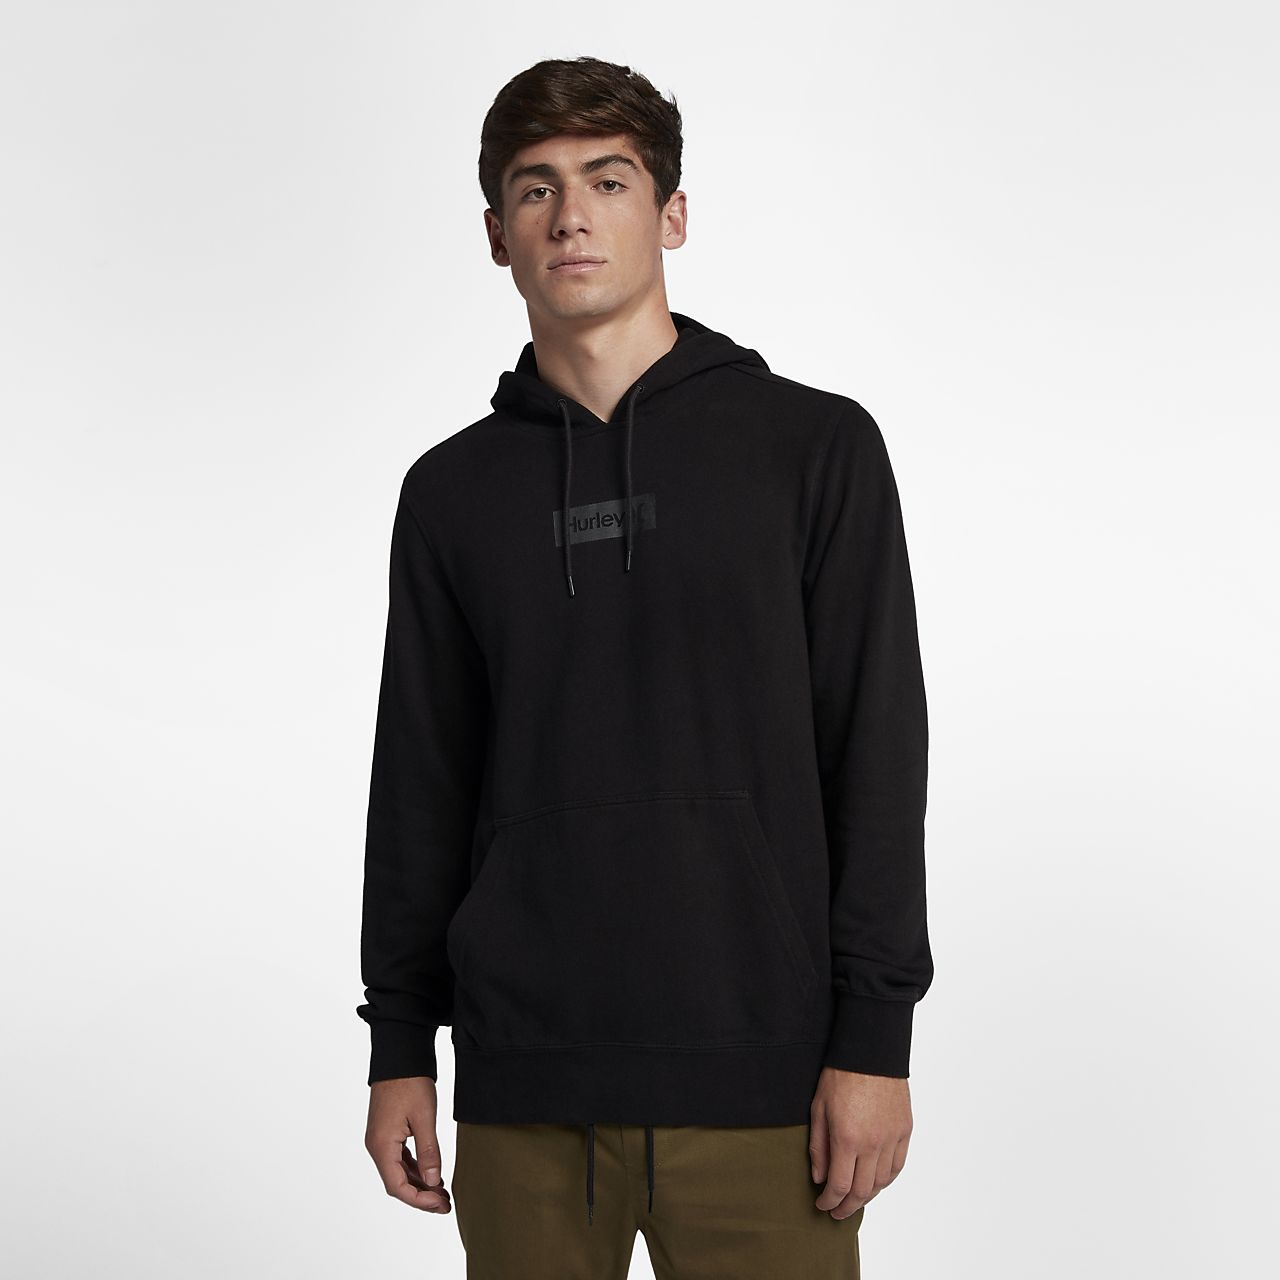 Hurley Team Buchan Men's Fleece Top